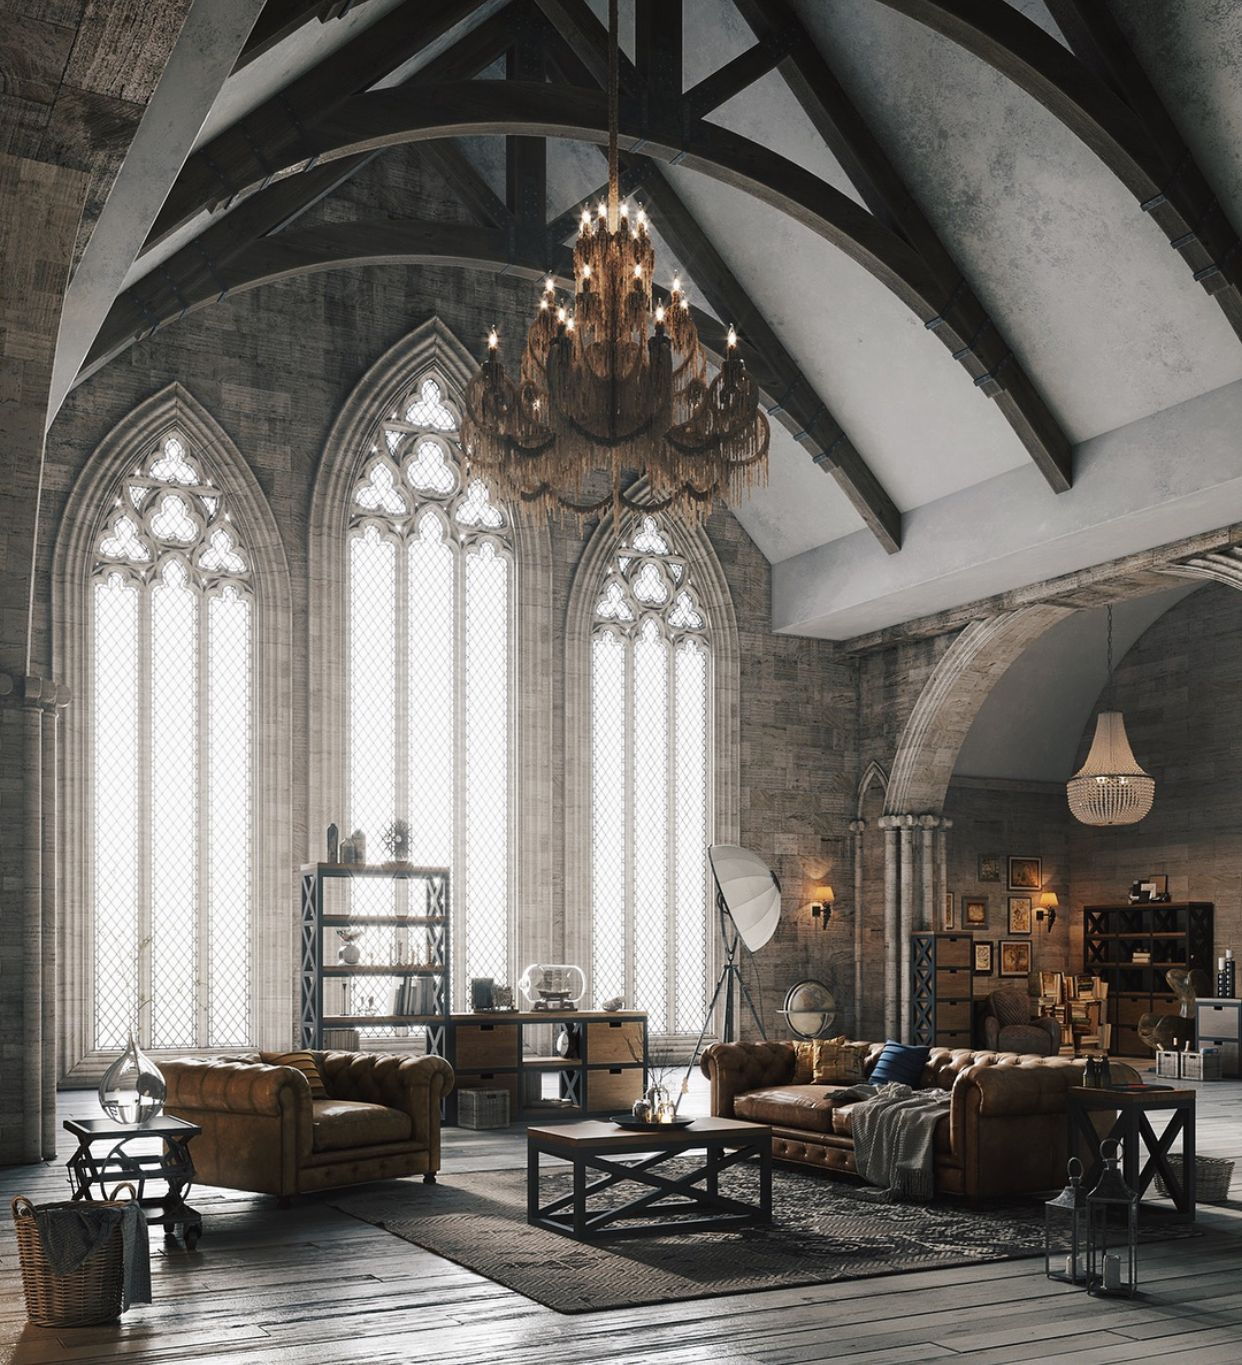 Best Home Style Inspiration Modern Gothic Style Homes In 2020 Loft Style Furniture Loft Design Loft Style